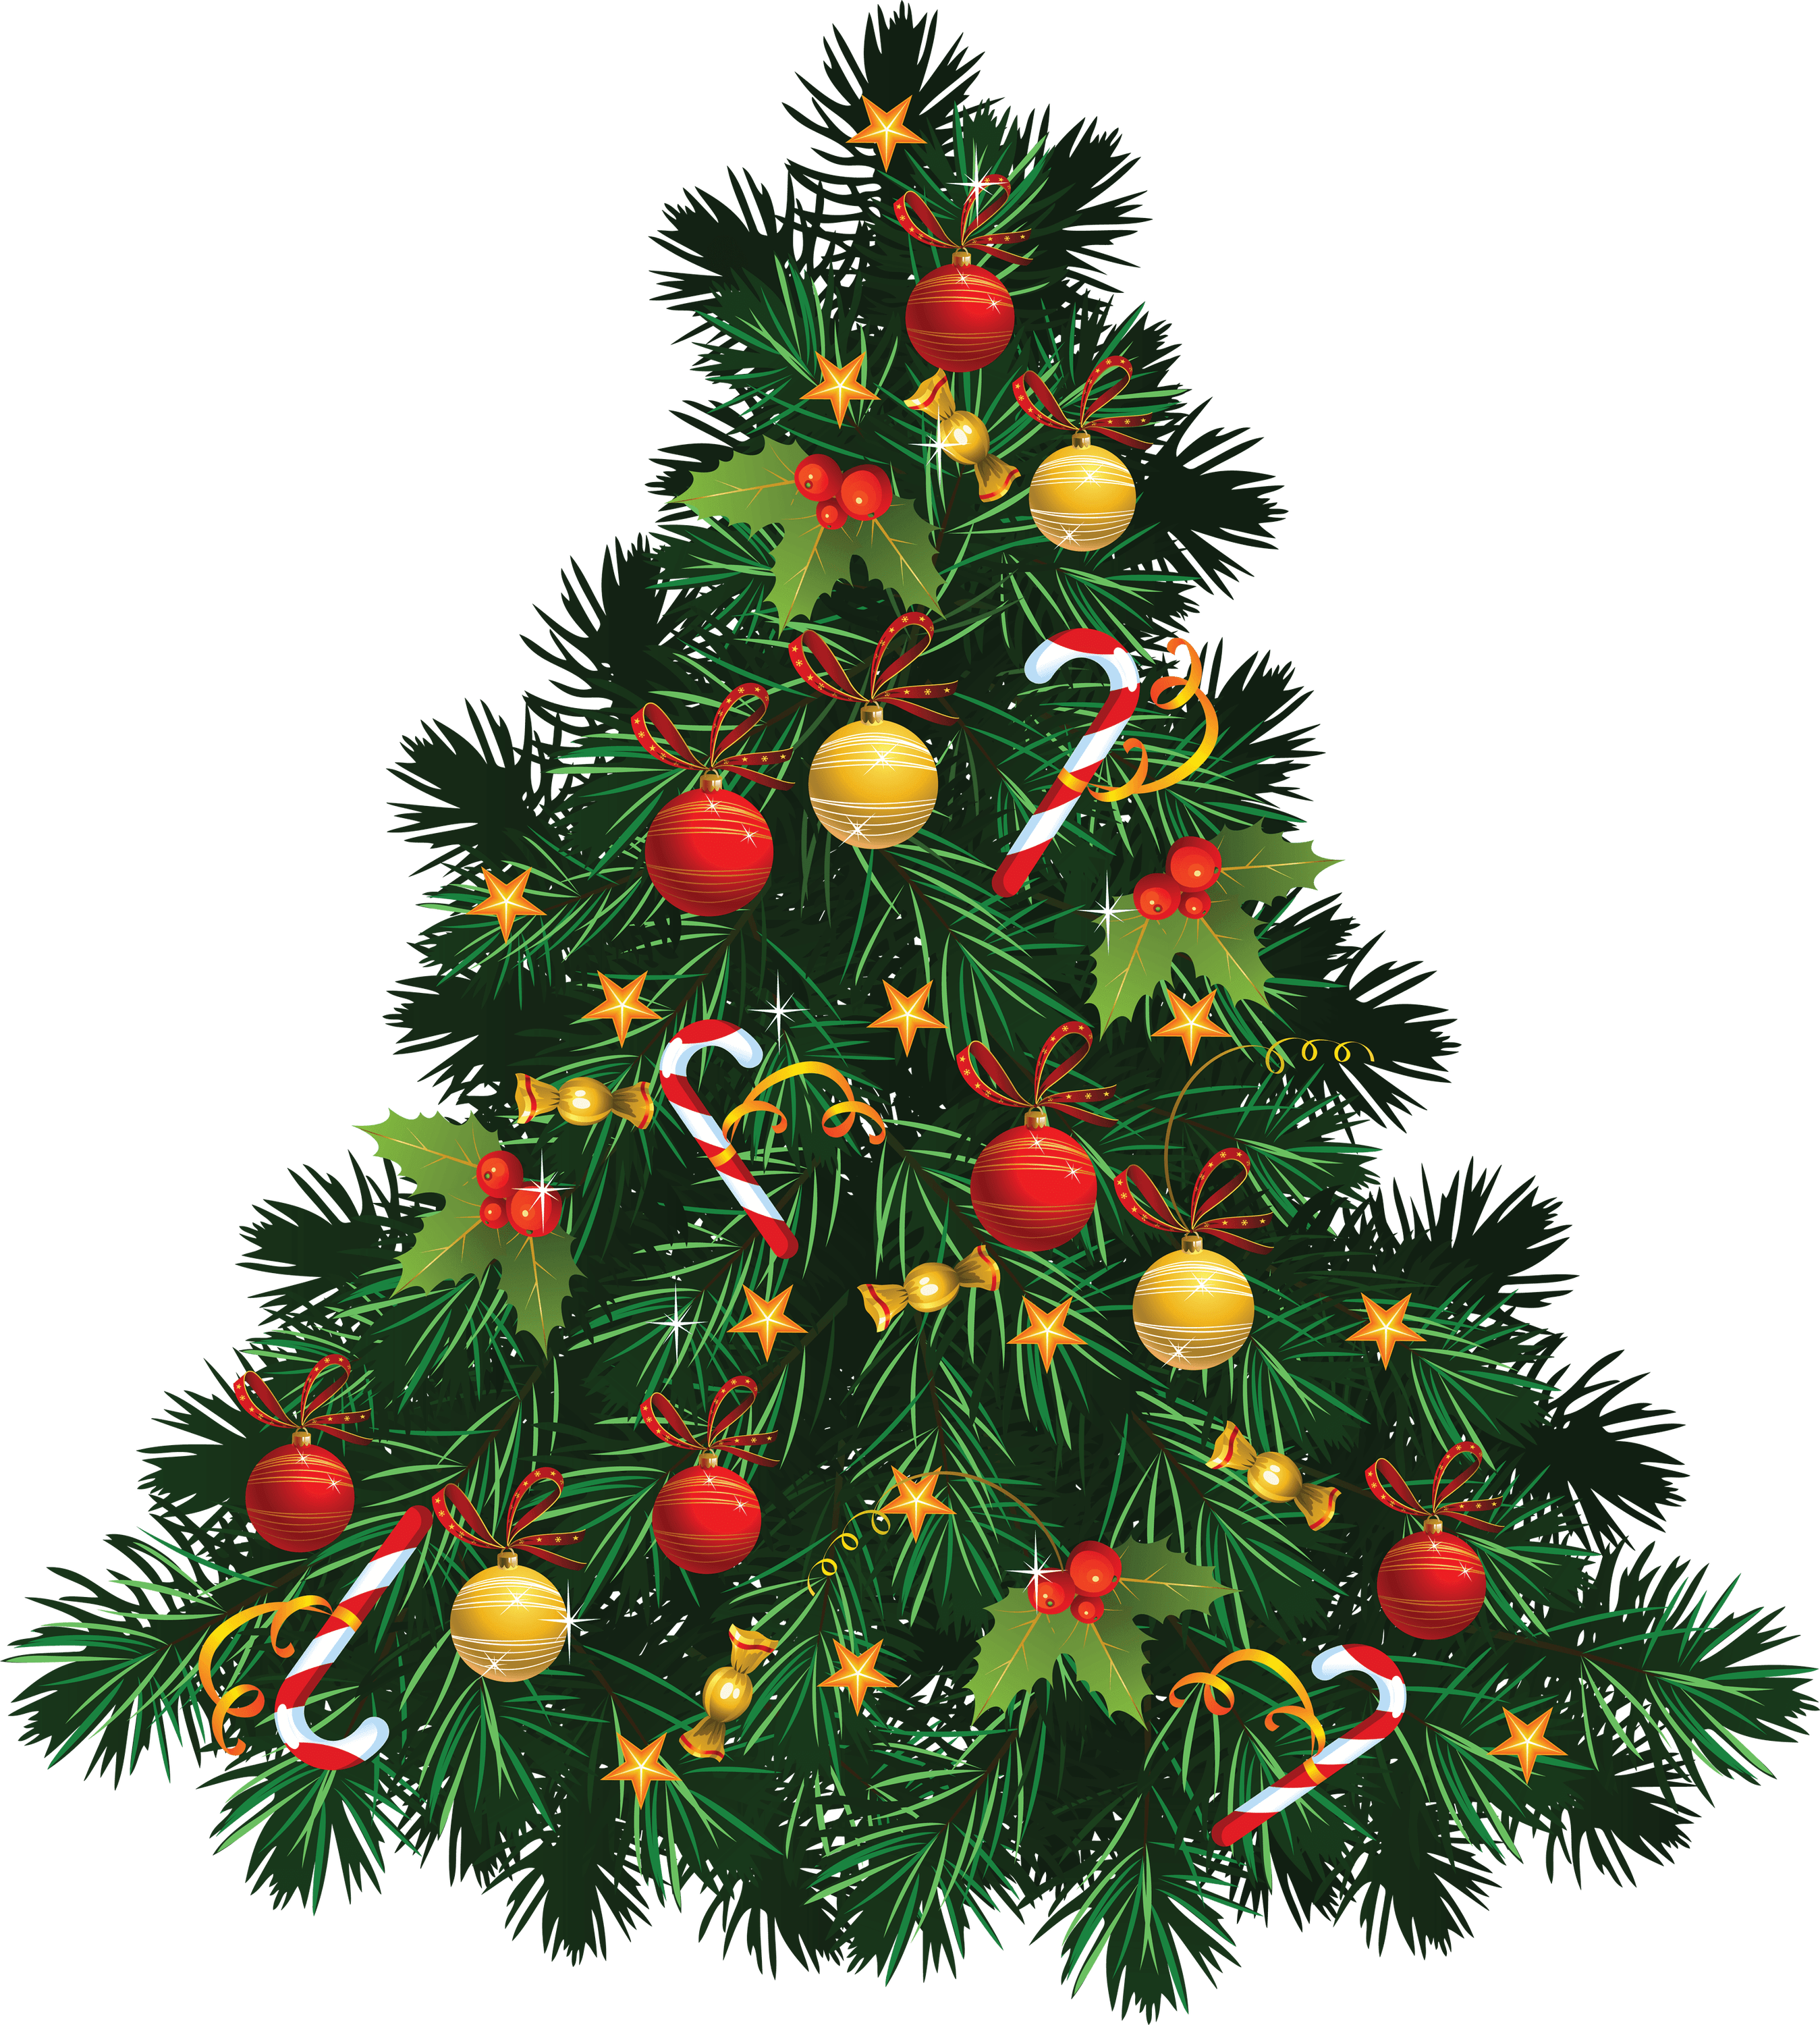 Christmas tree snow transparent. Door clipart holiday